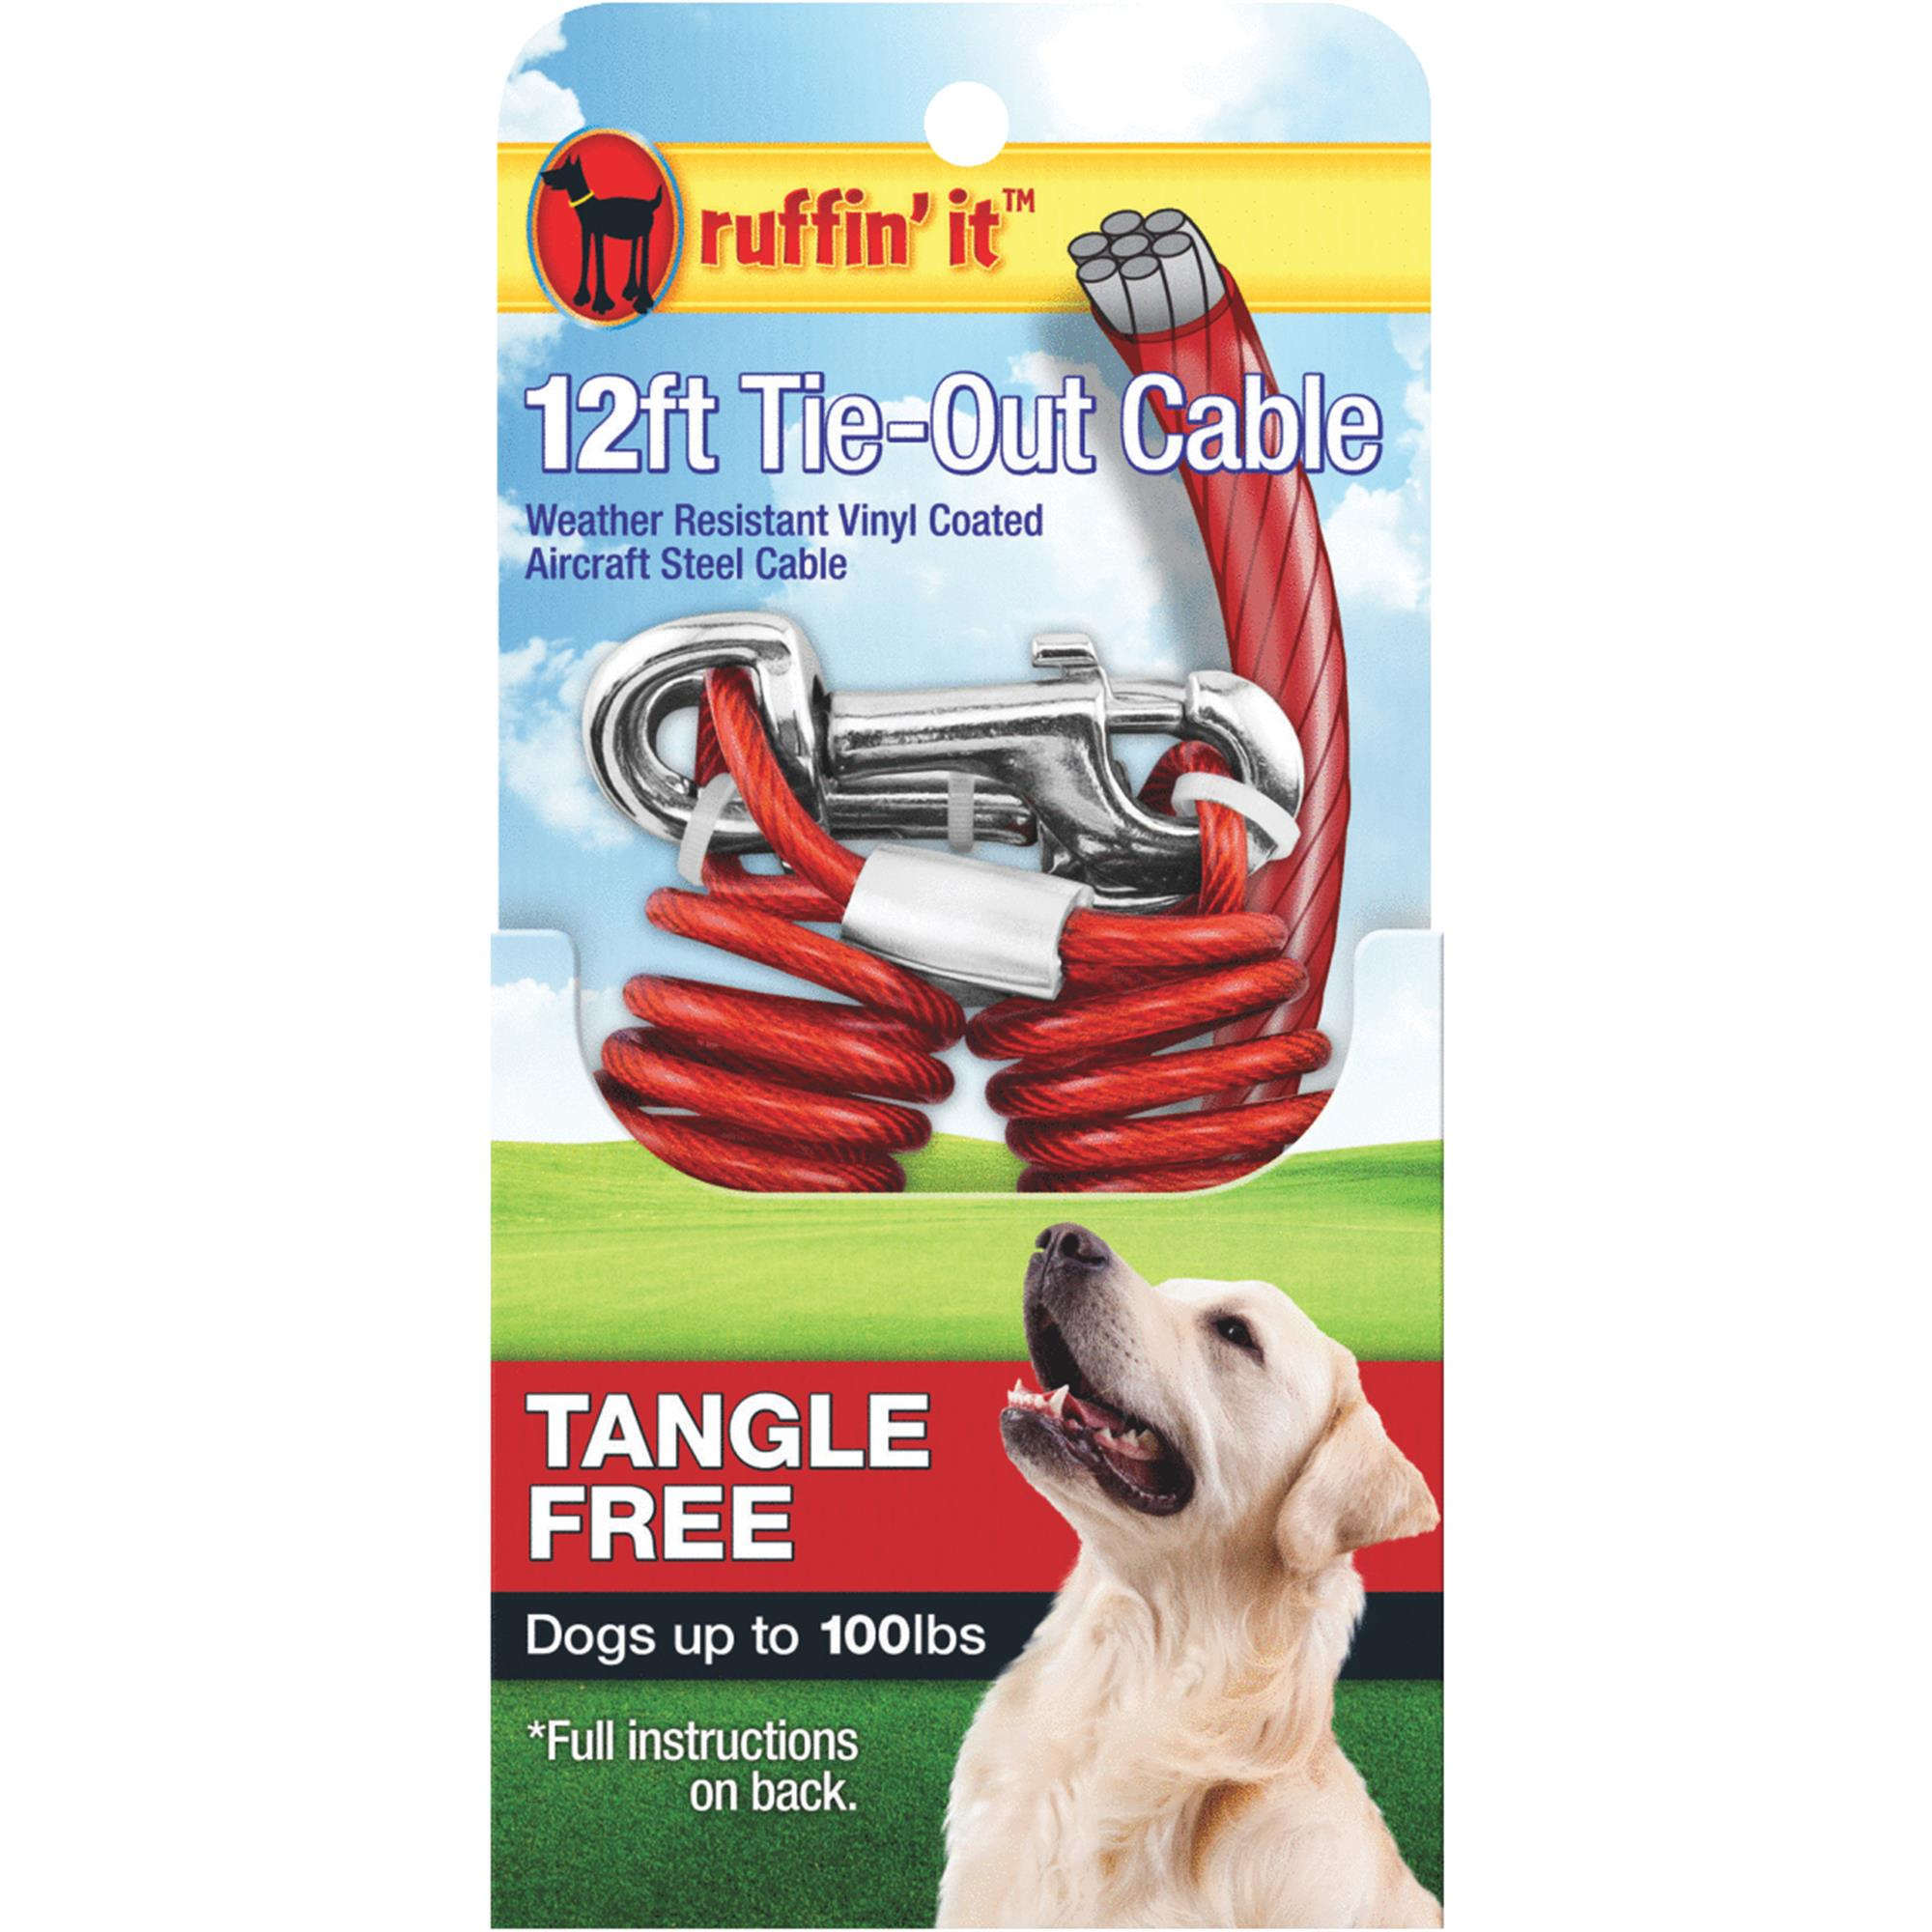 Tangle-Resistant Dog Tie-Out Cable